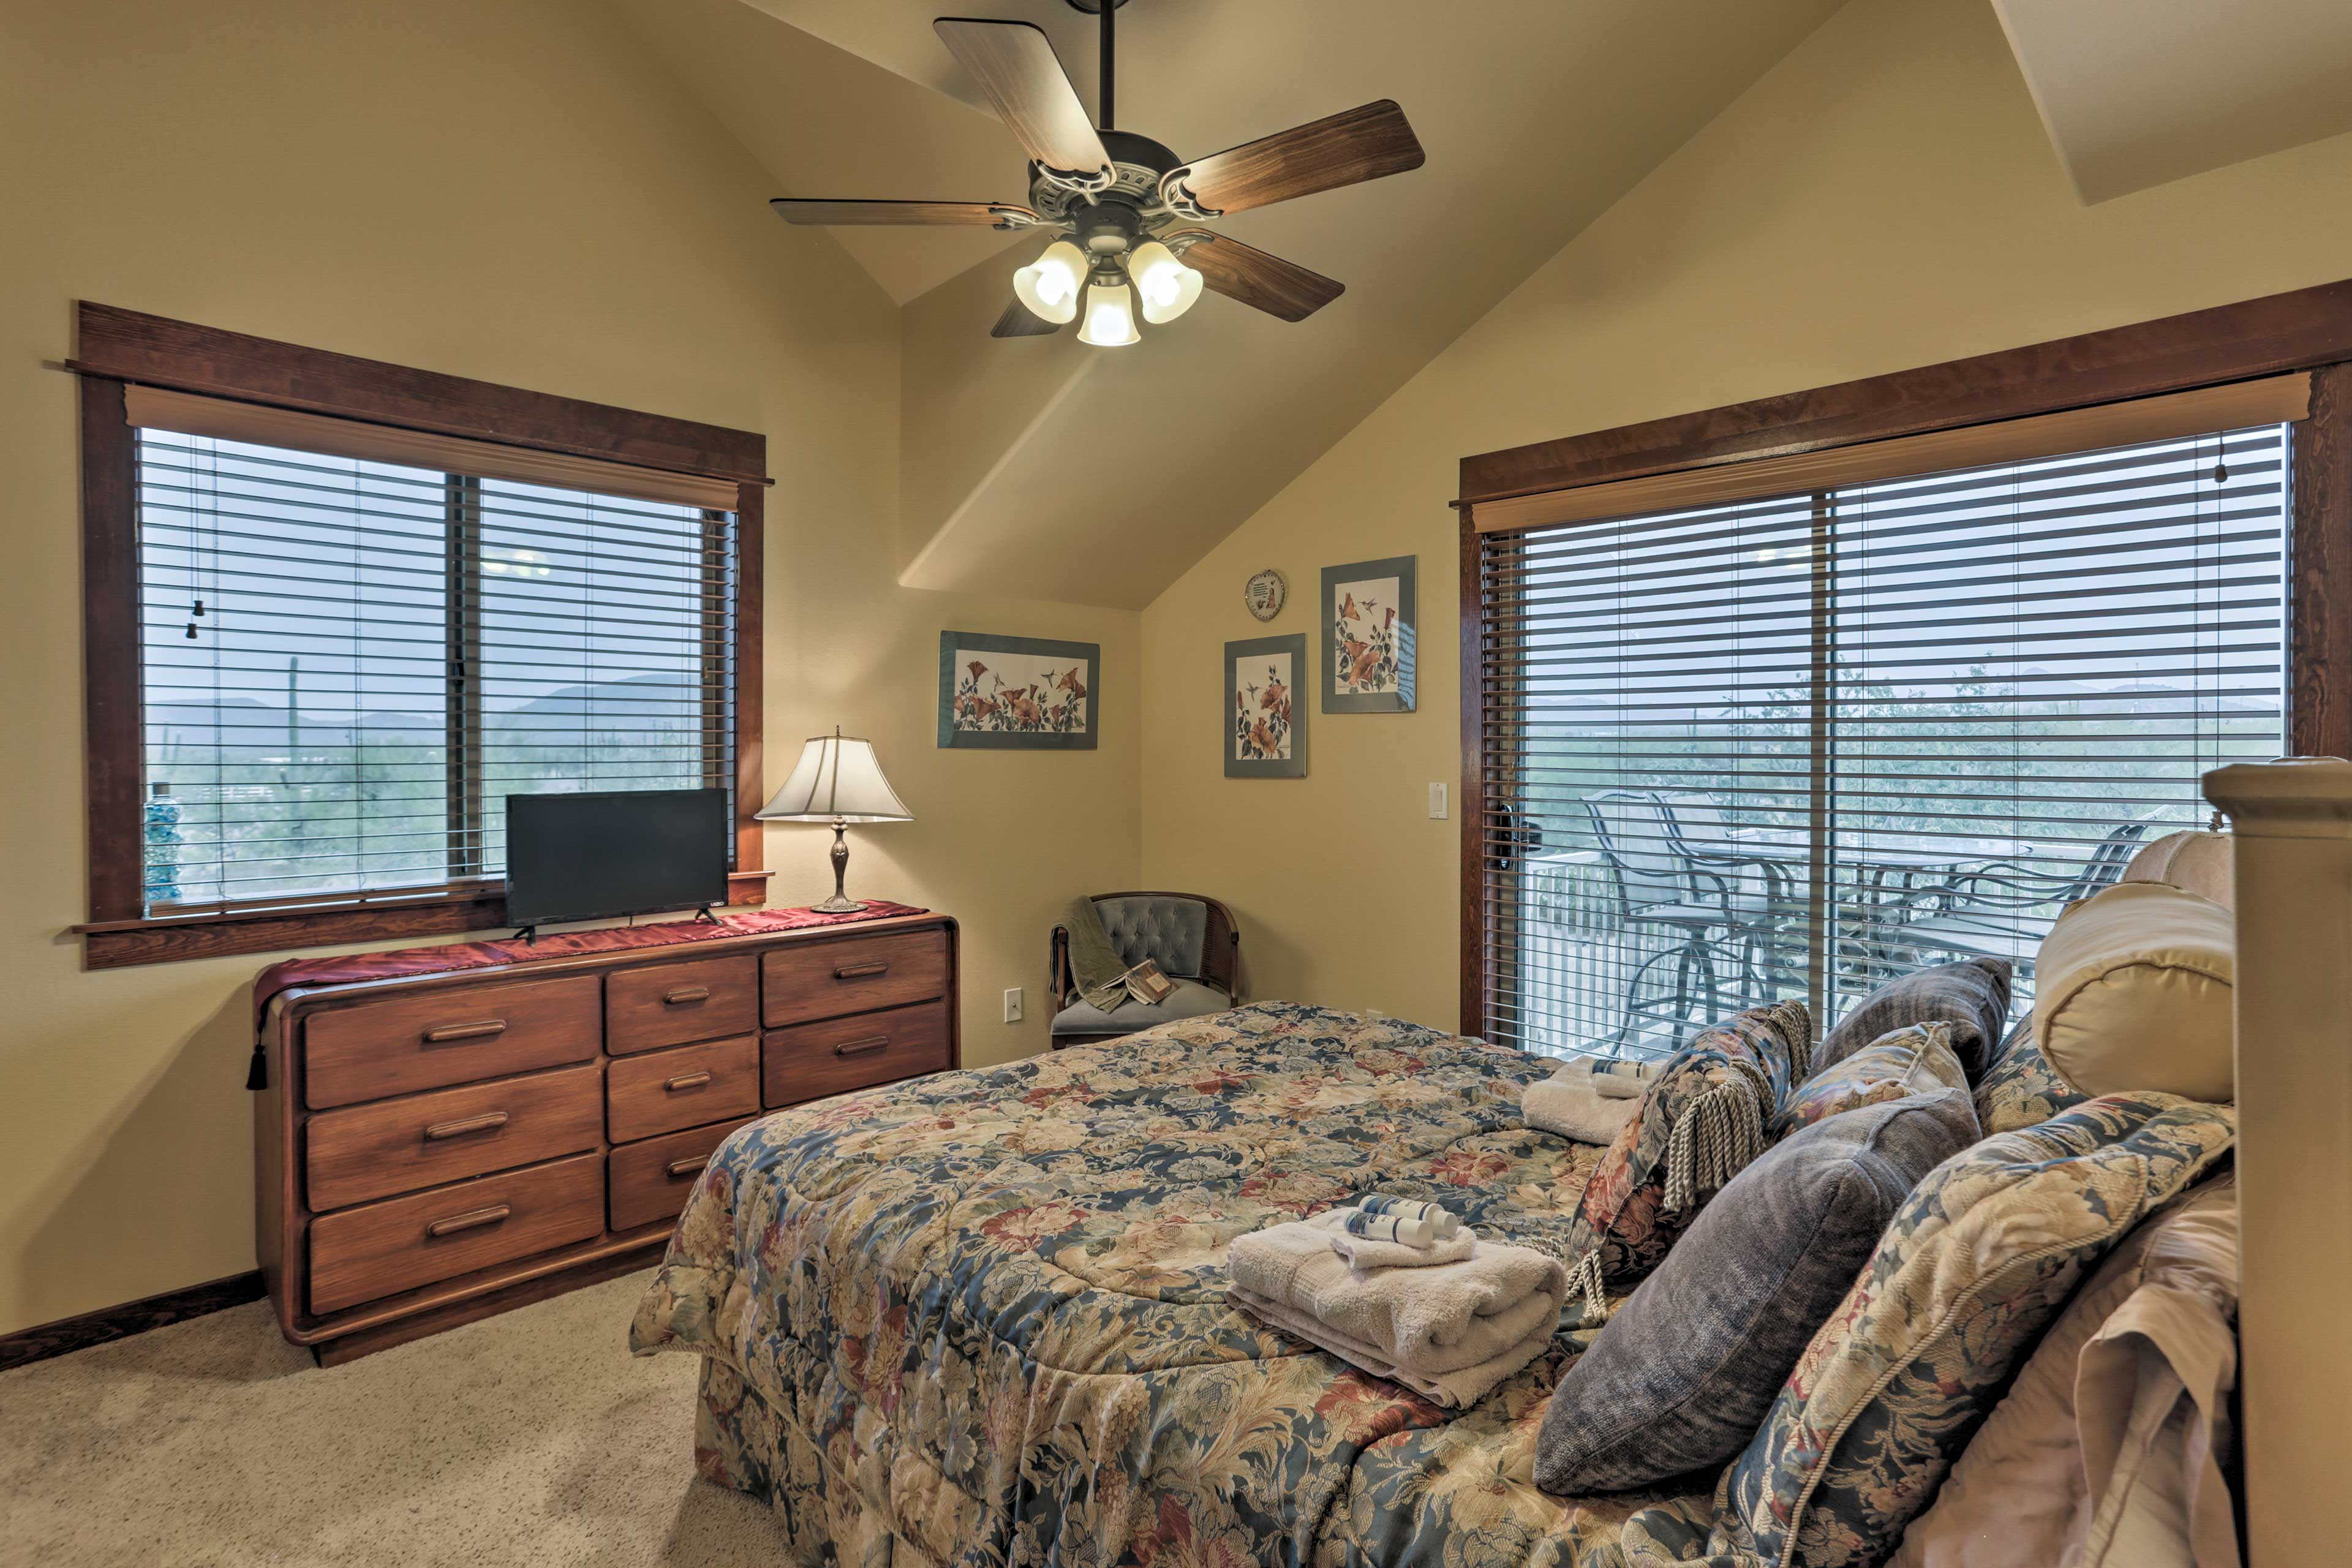 Cool things off with the ceiling fan!